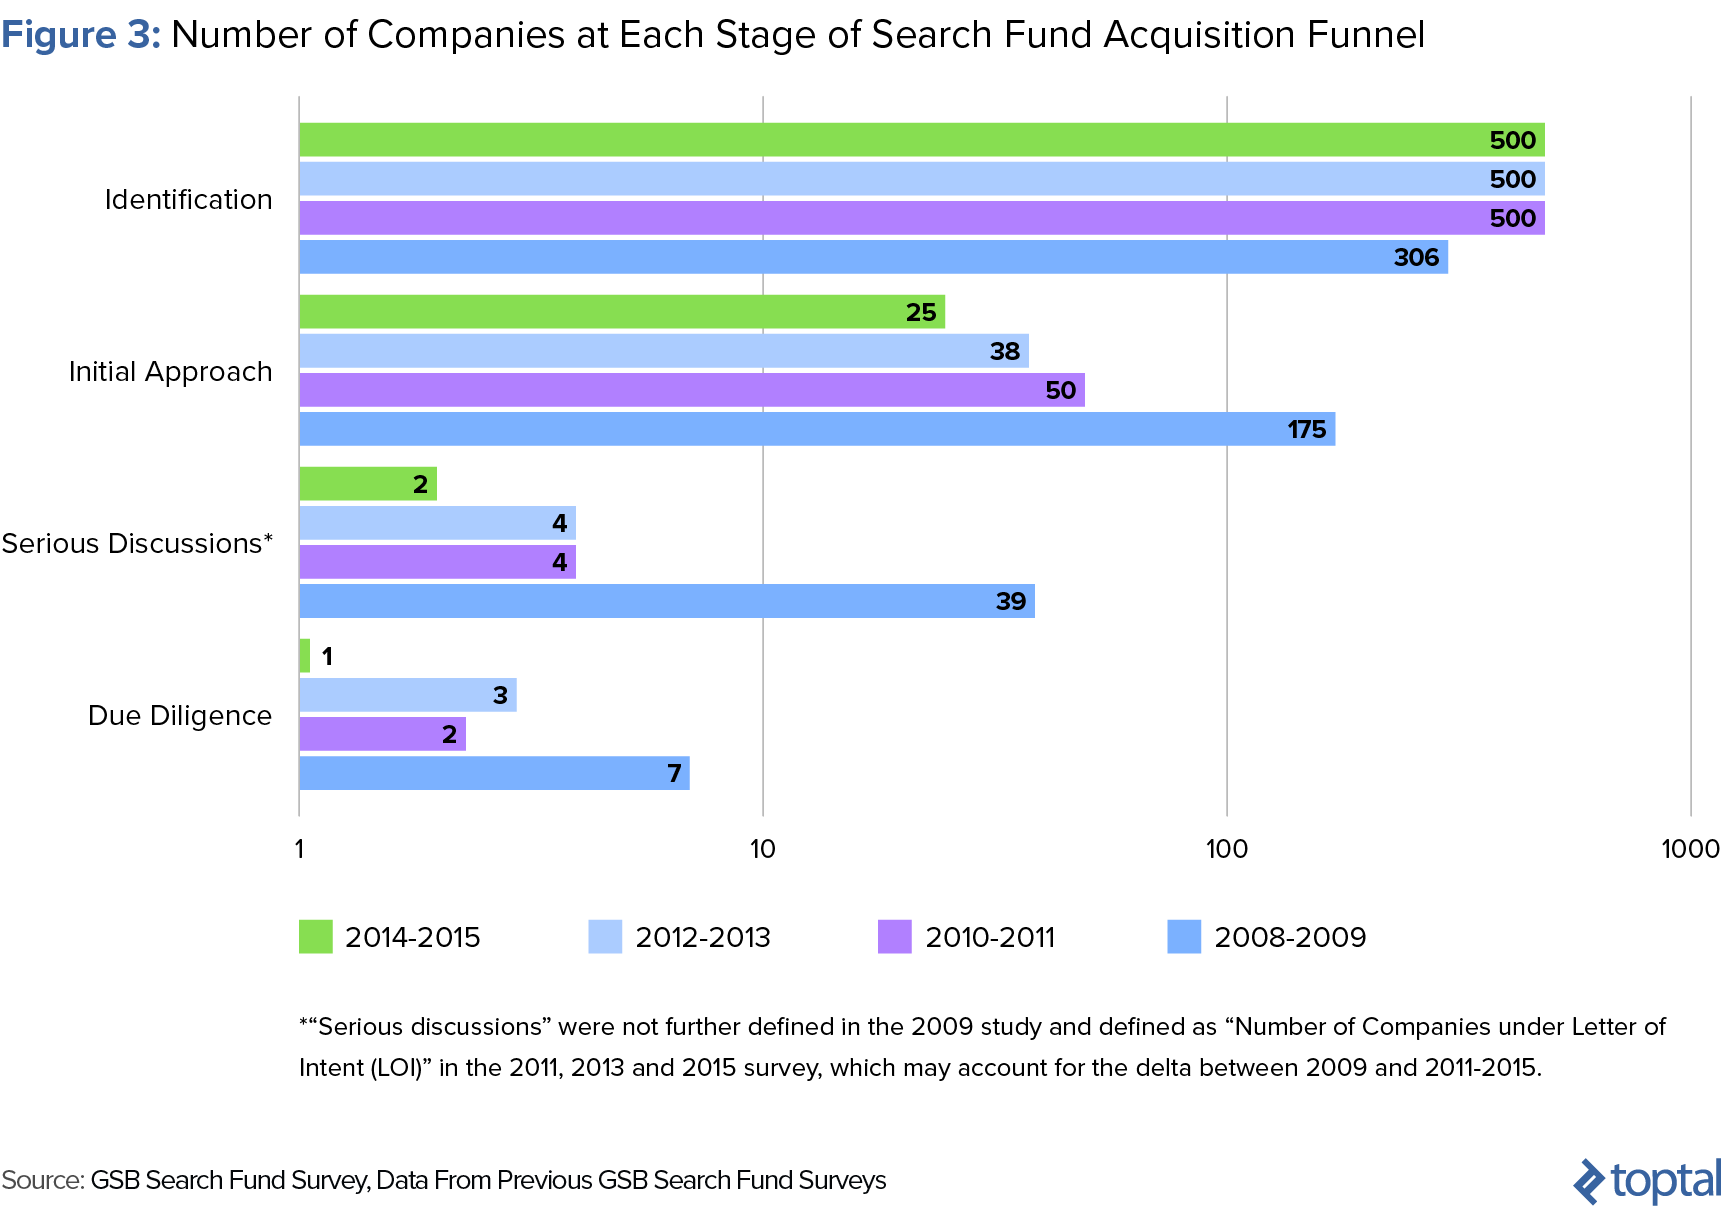 Figure 3: Number of Companies at Each Stage of Search Fund Acquisition Funnel